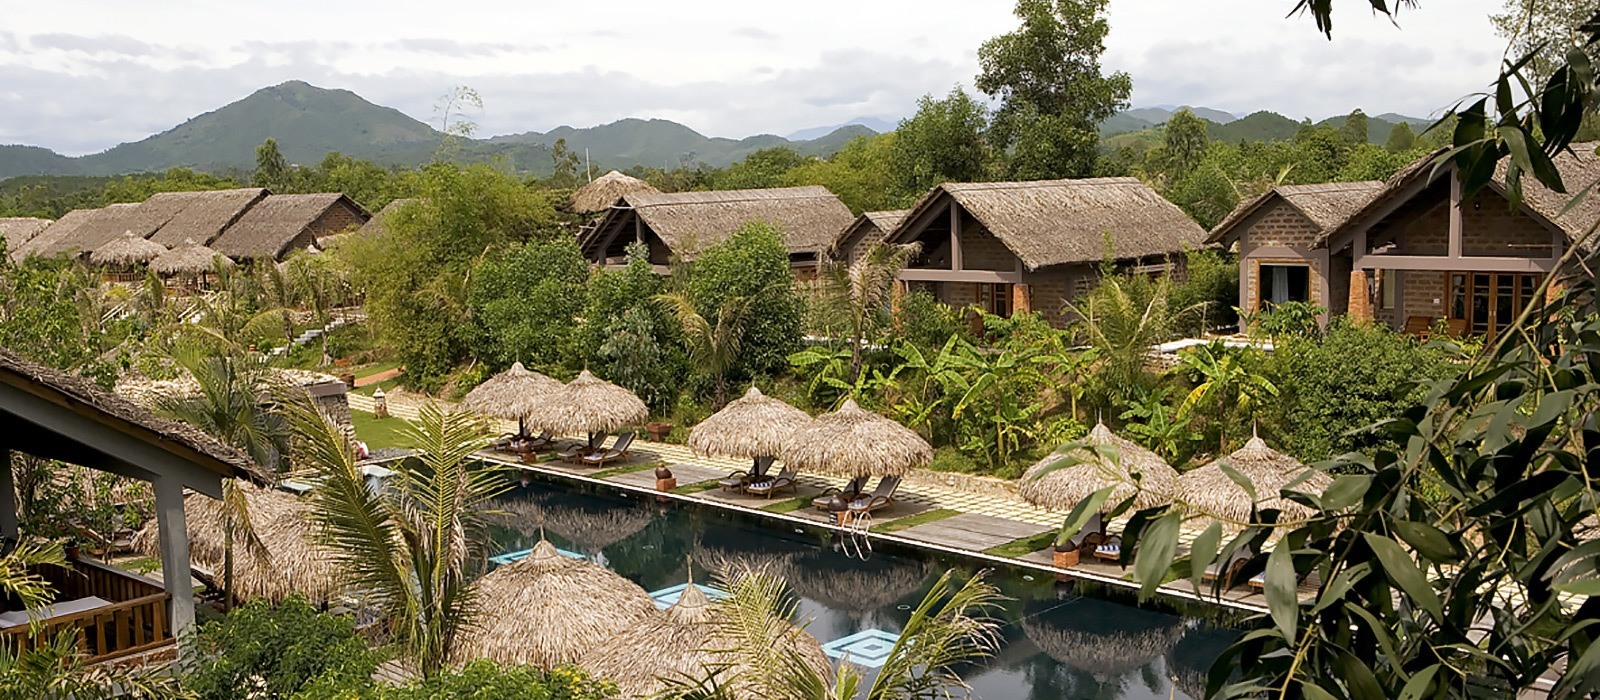 Grand Tour of Vietnam   Tours & Trips with ENCHANTING TRAVELS